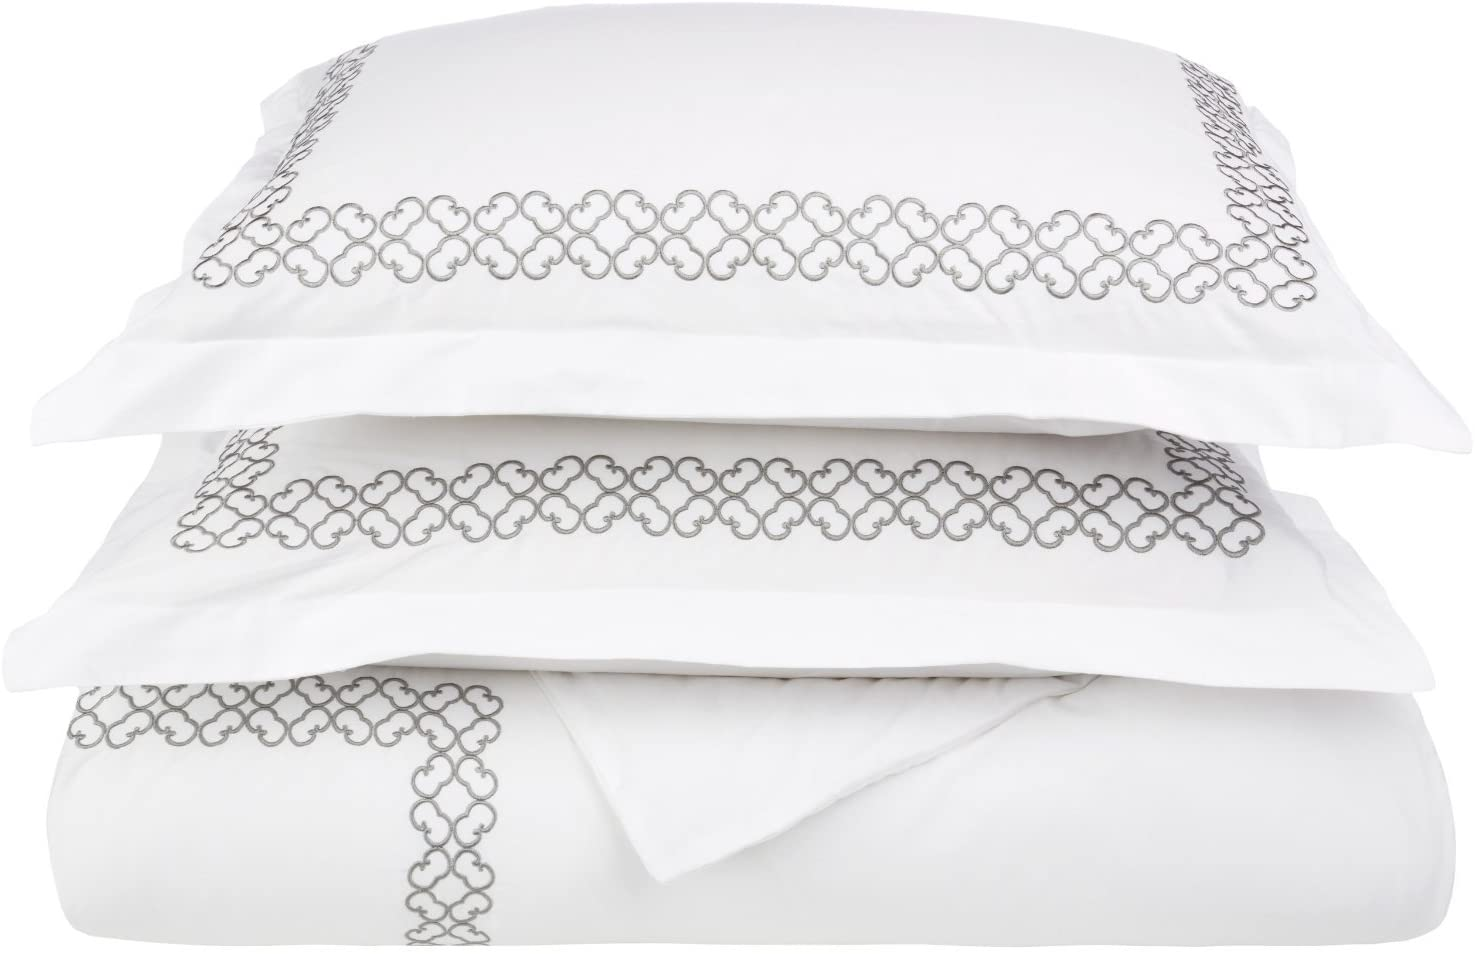 Clayton Luxury Embroidery 100% Cotton King/California King 3 pc Duvet Cover Set